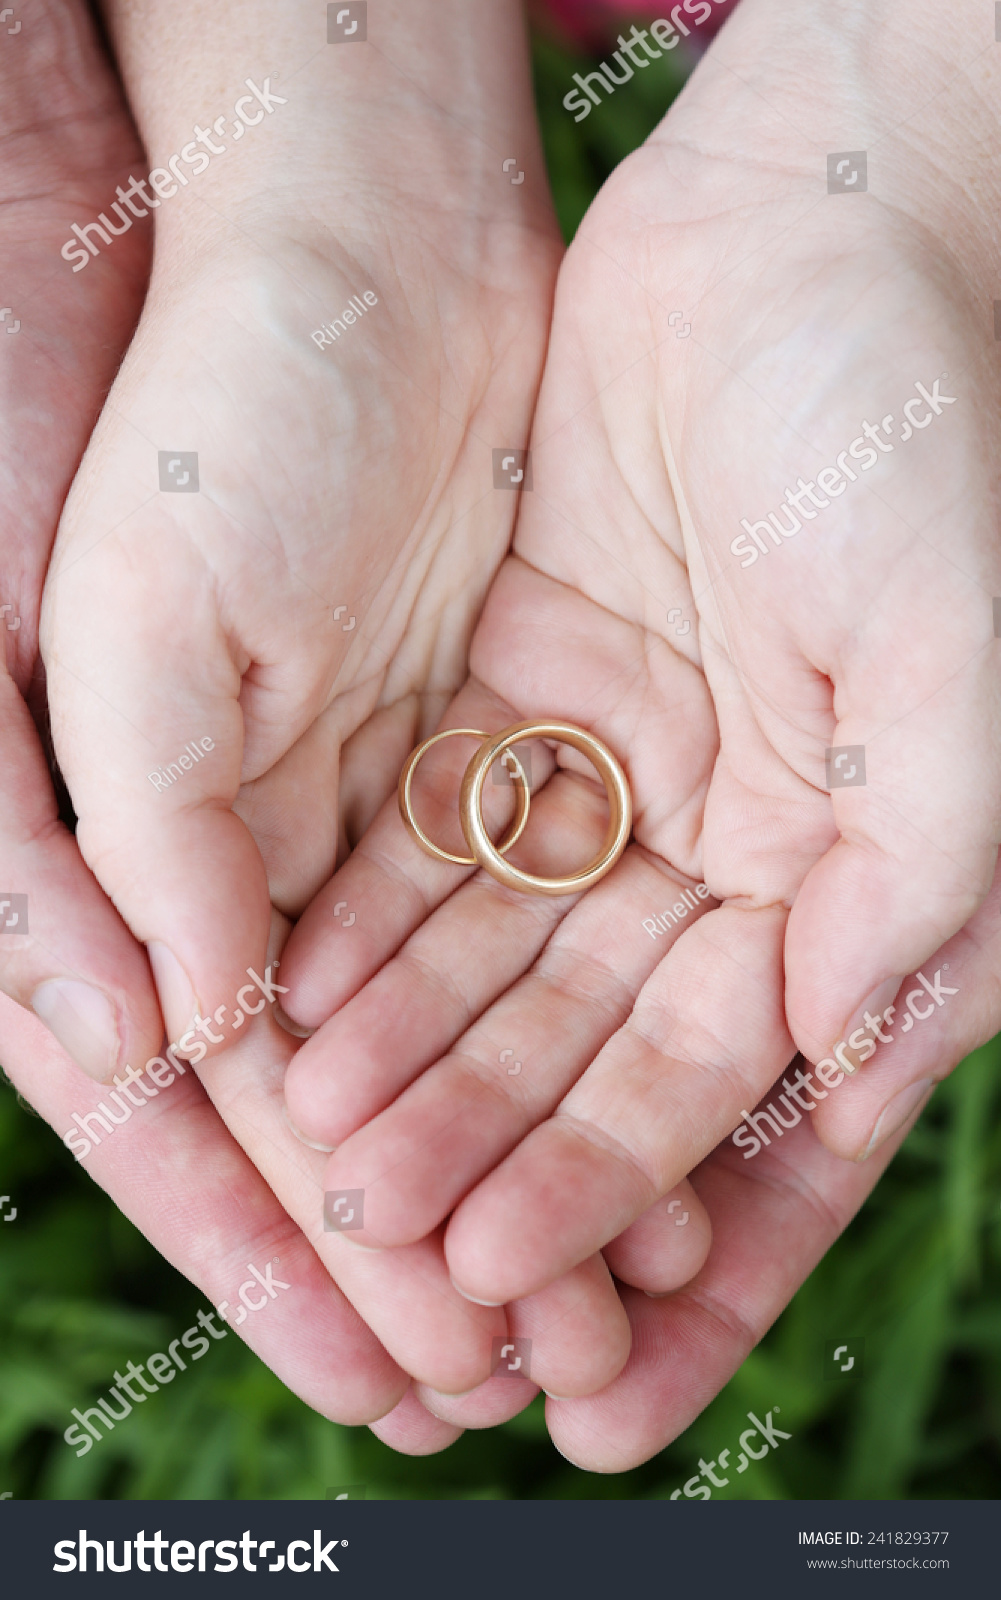 Our Wedding Rings Stock Photo (Royalty Free) 241829377 - Shutterstock